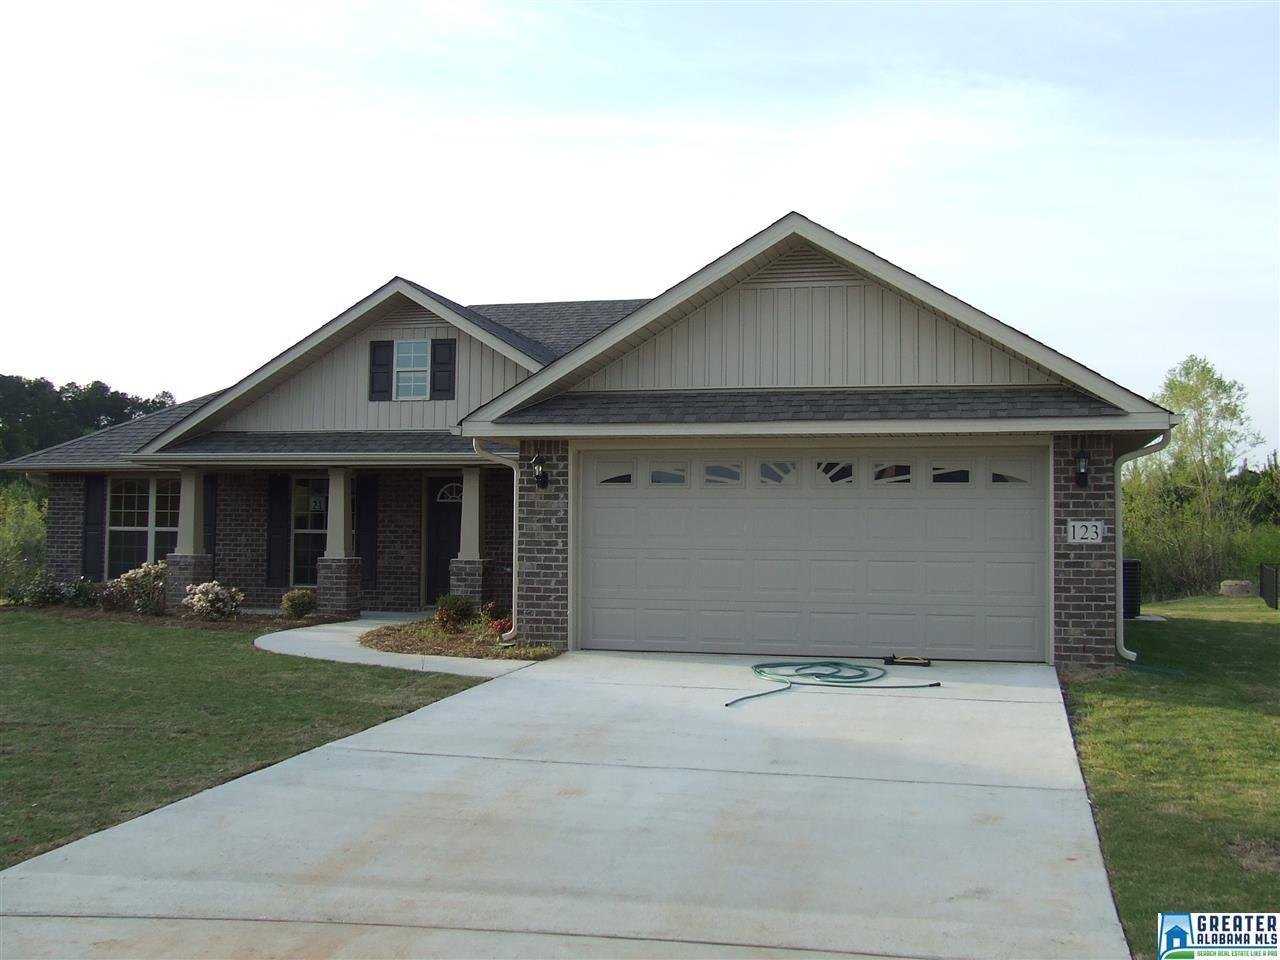 228 Waterford Cove Trl - Photo 1